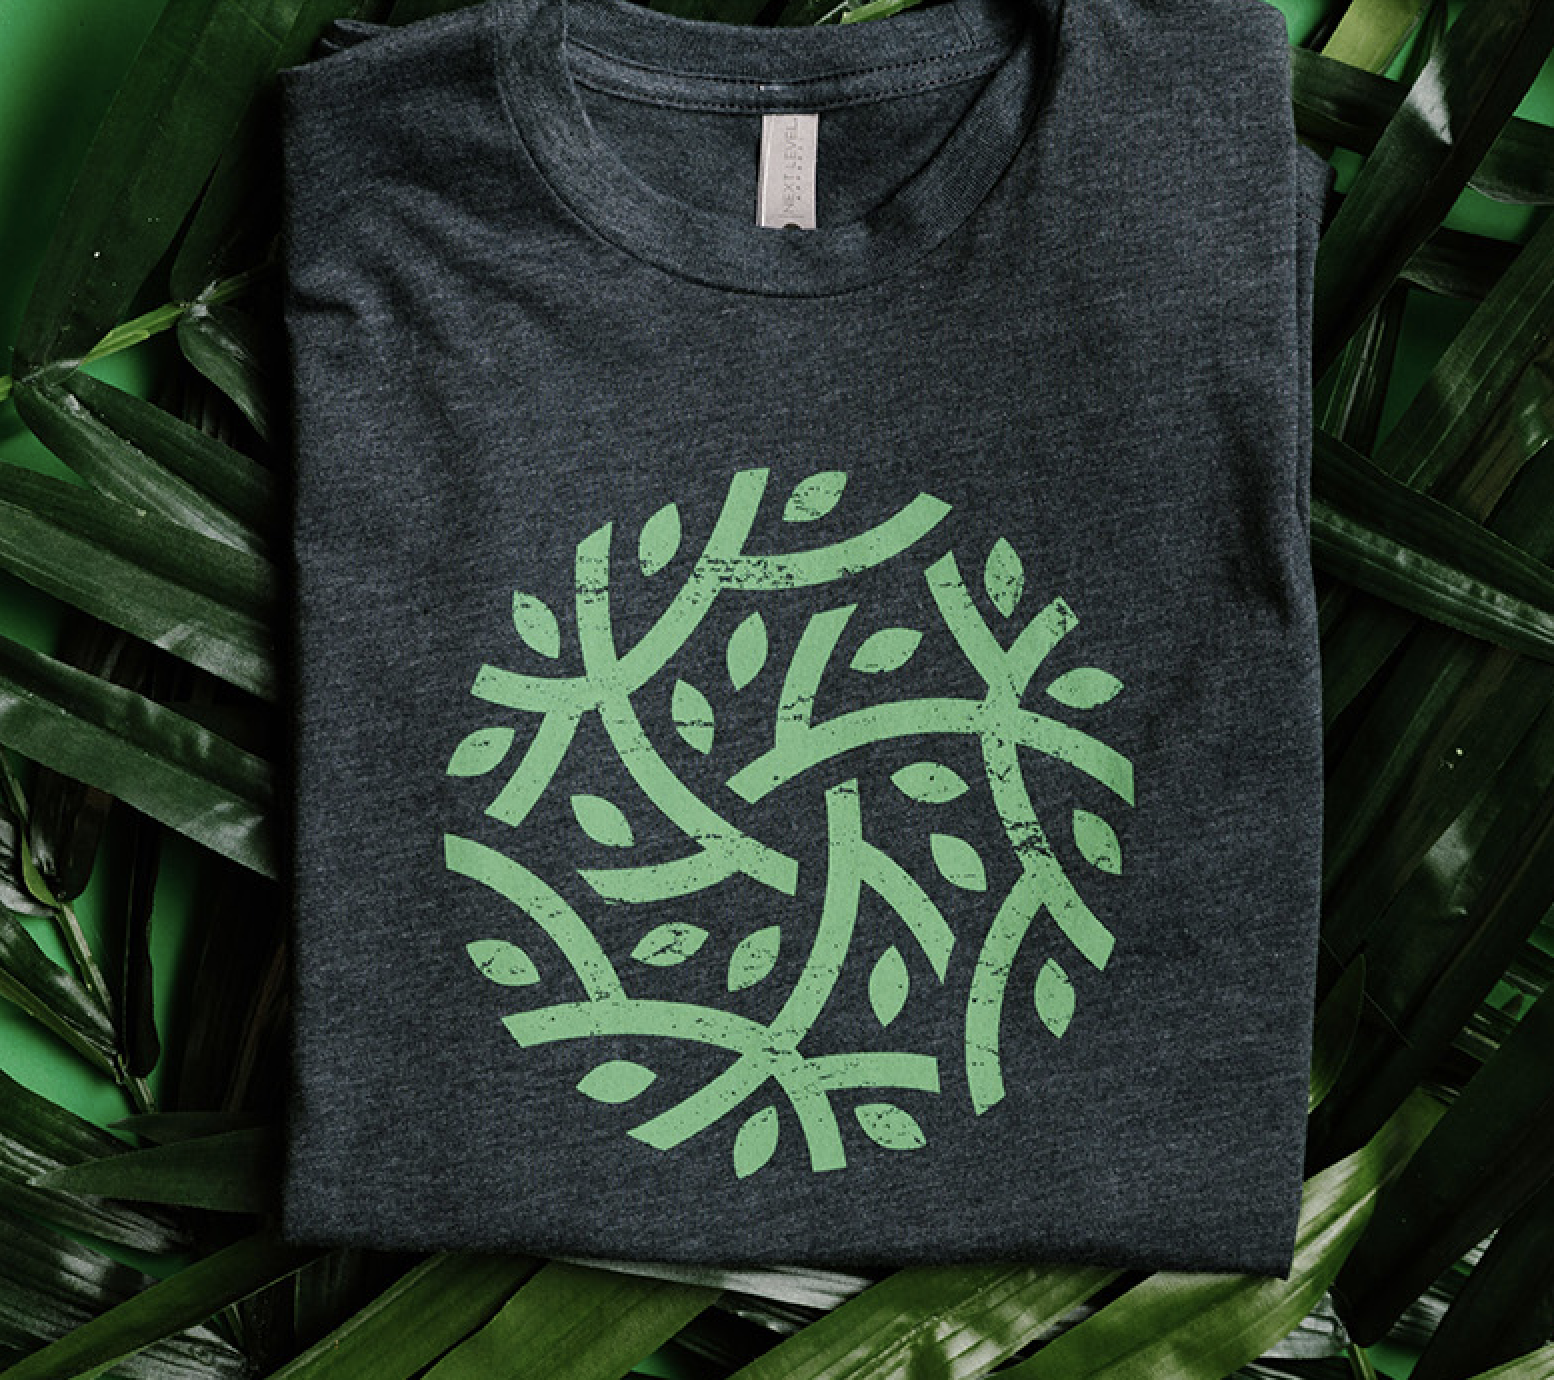 A shirt with a green plant design on the front.